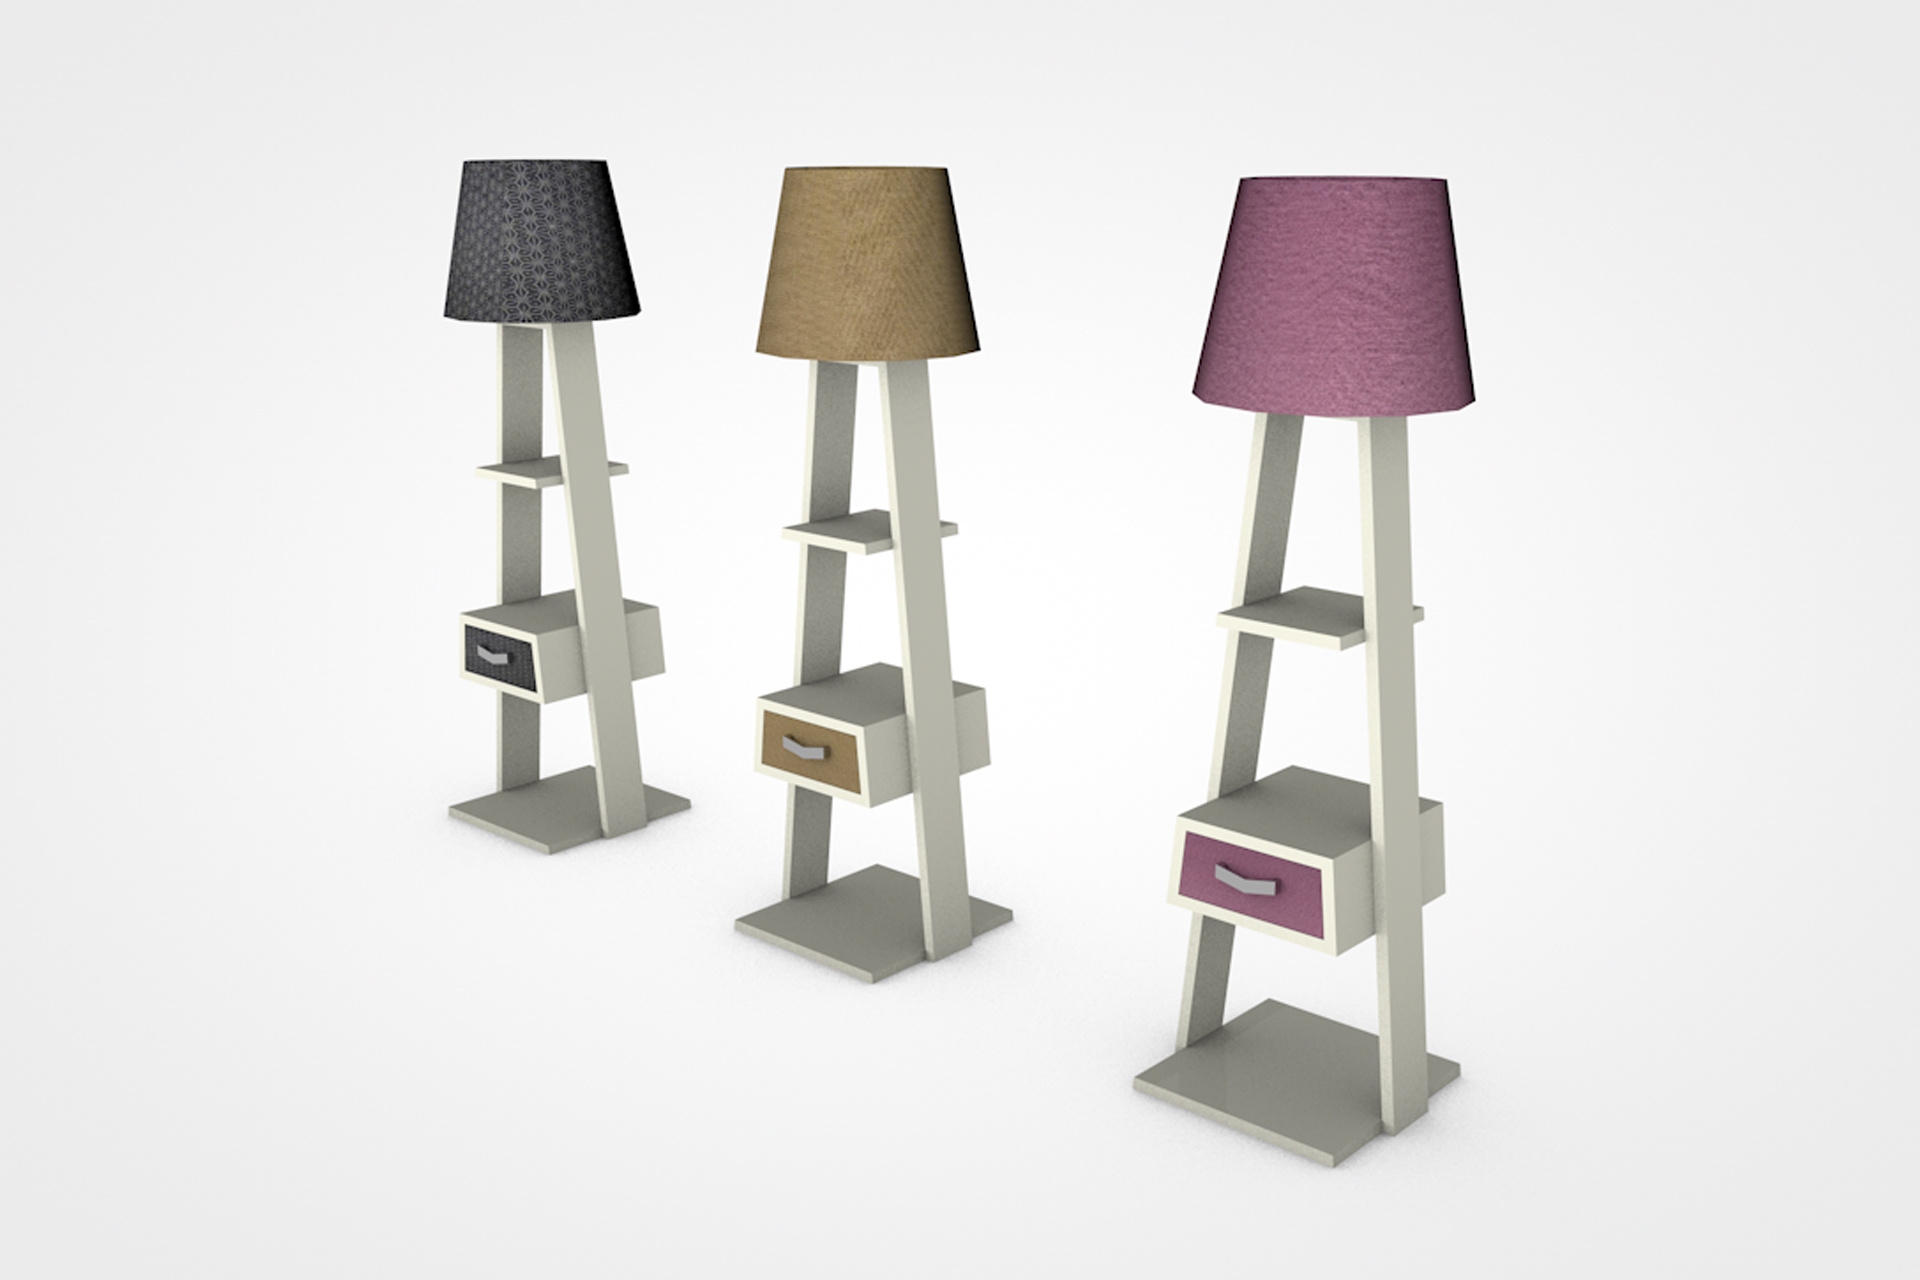 library_lamp_imm_01